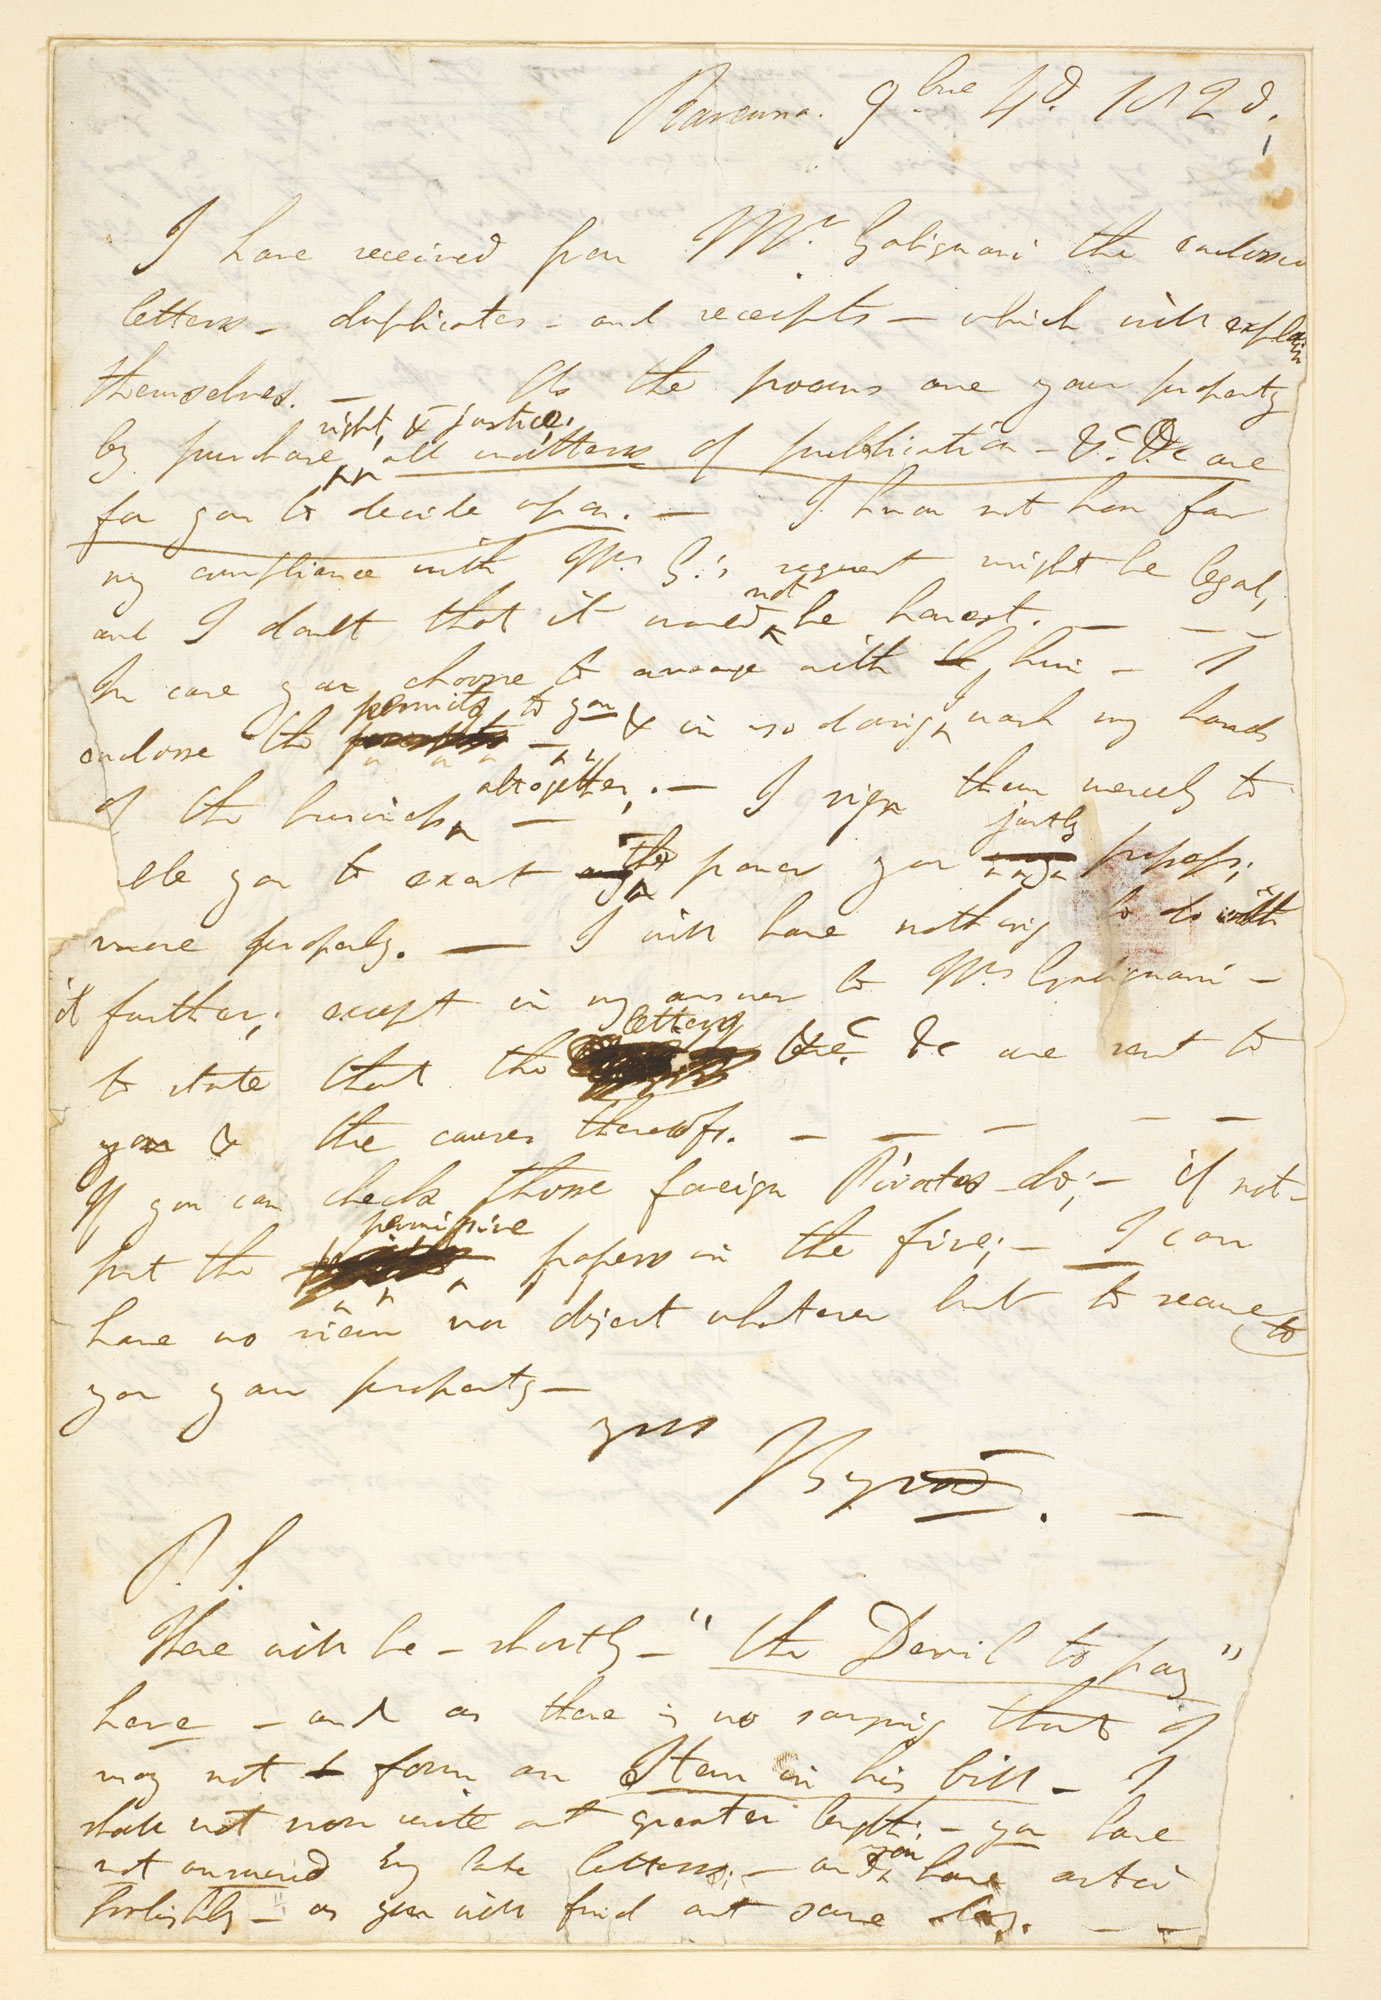 Letter from Lord Byron to John Murray, 4 November 1820